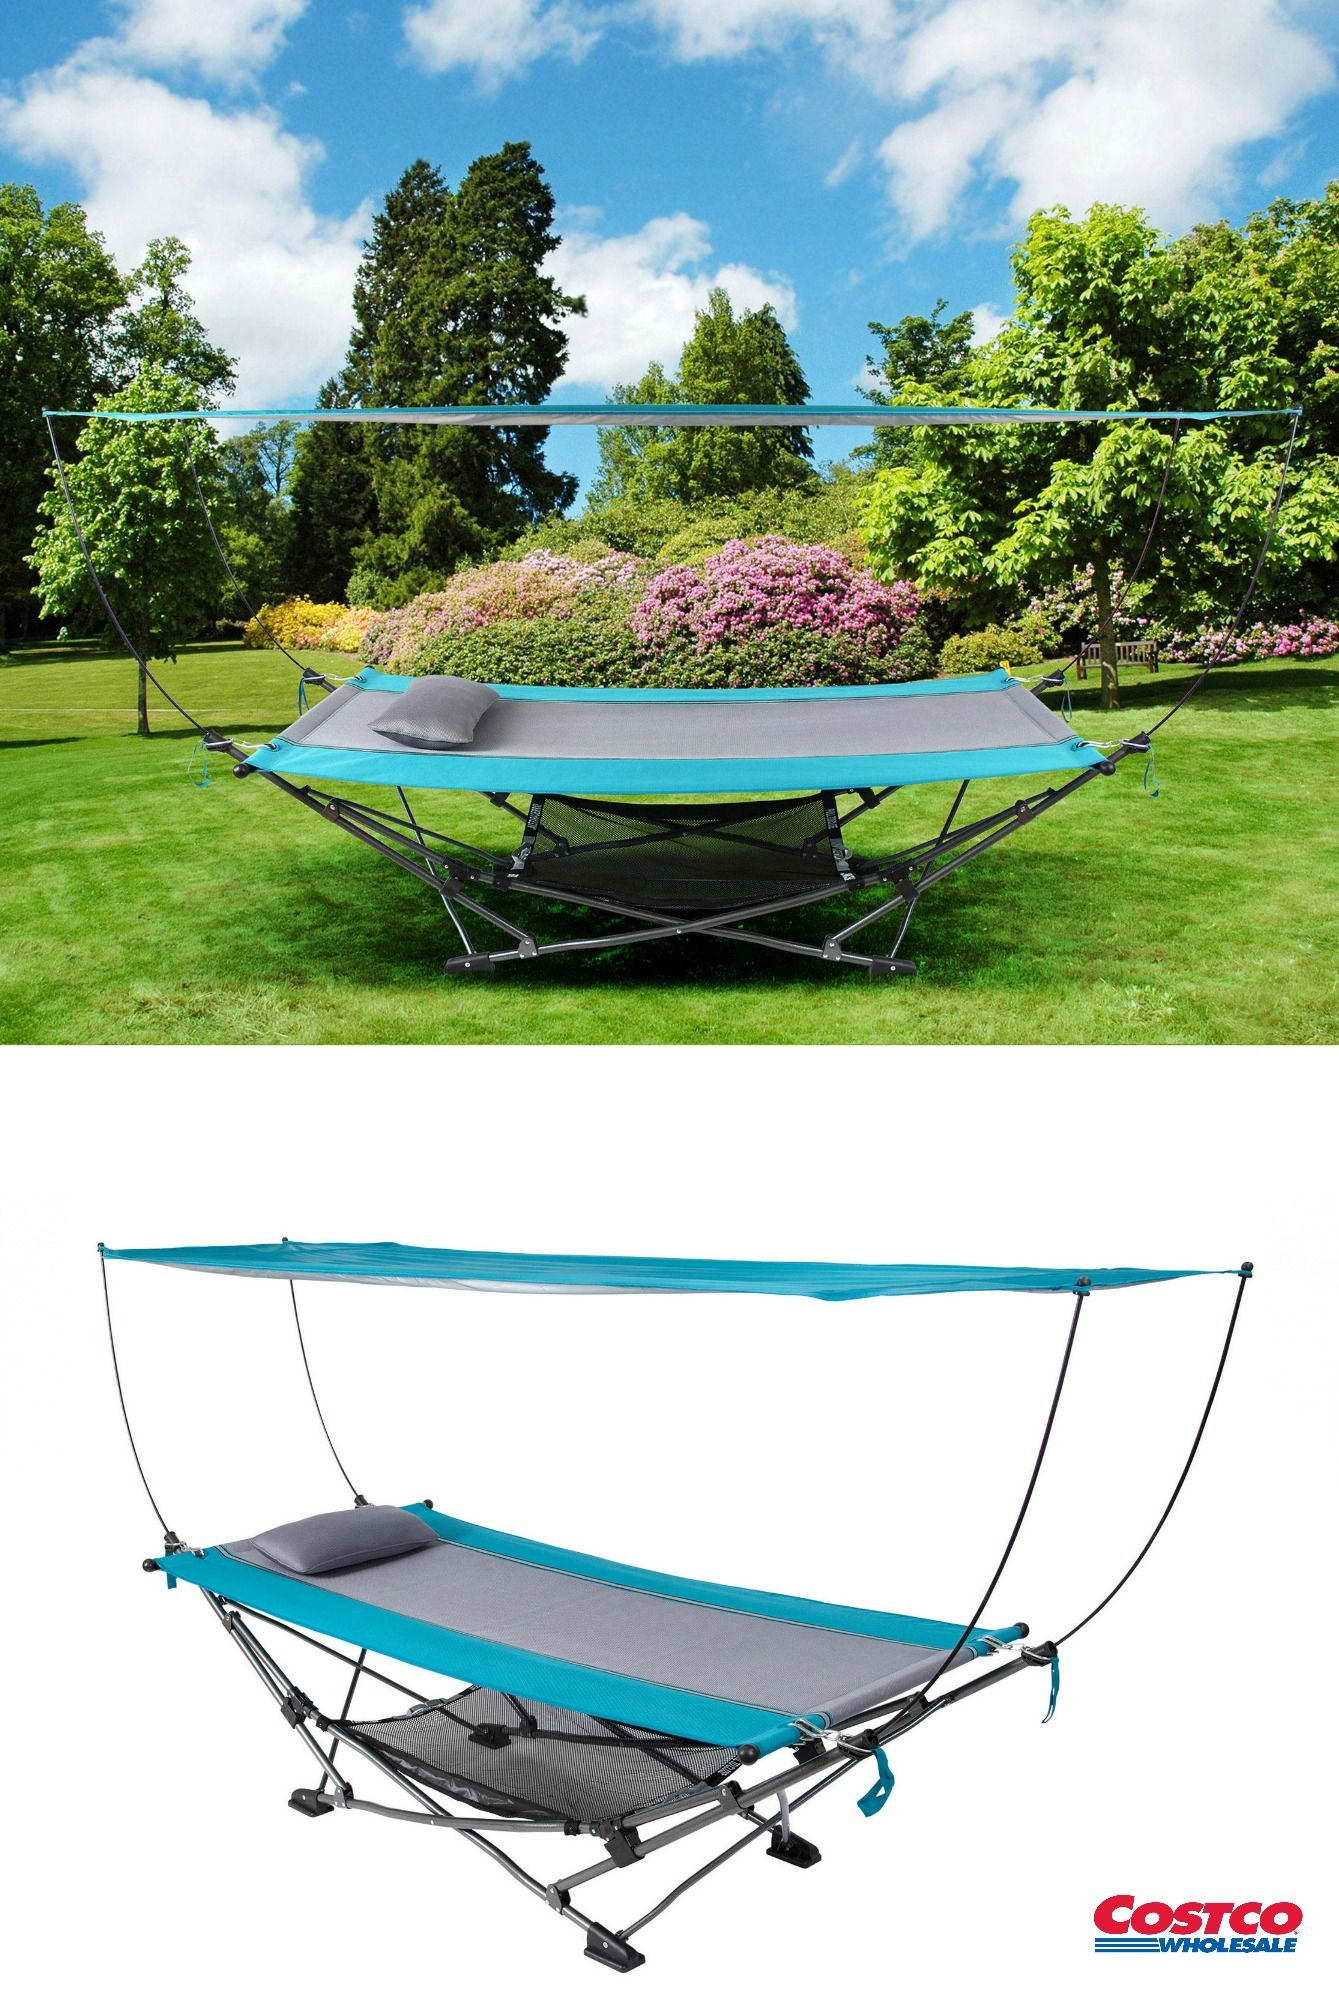 This Folding Hammock With Canopy Sets Up In Minutes Making It